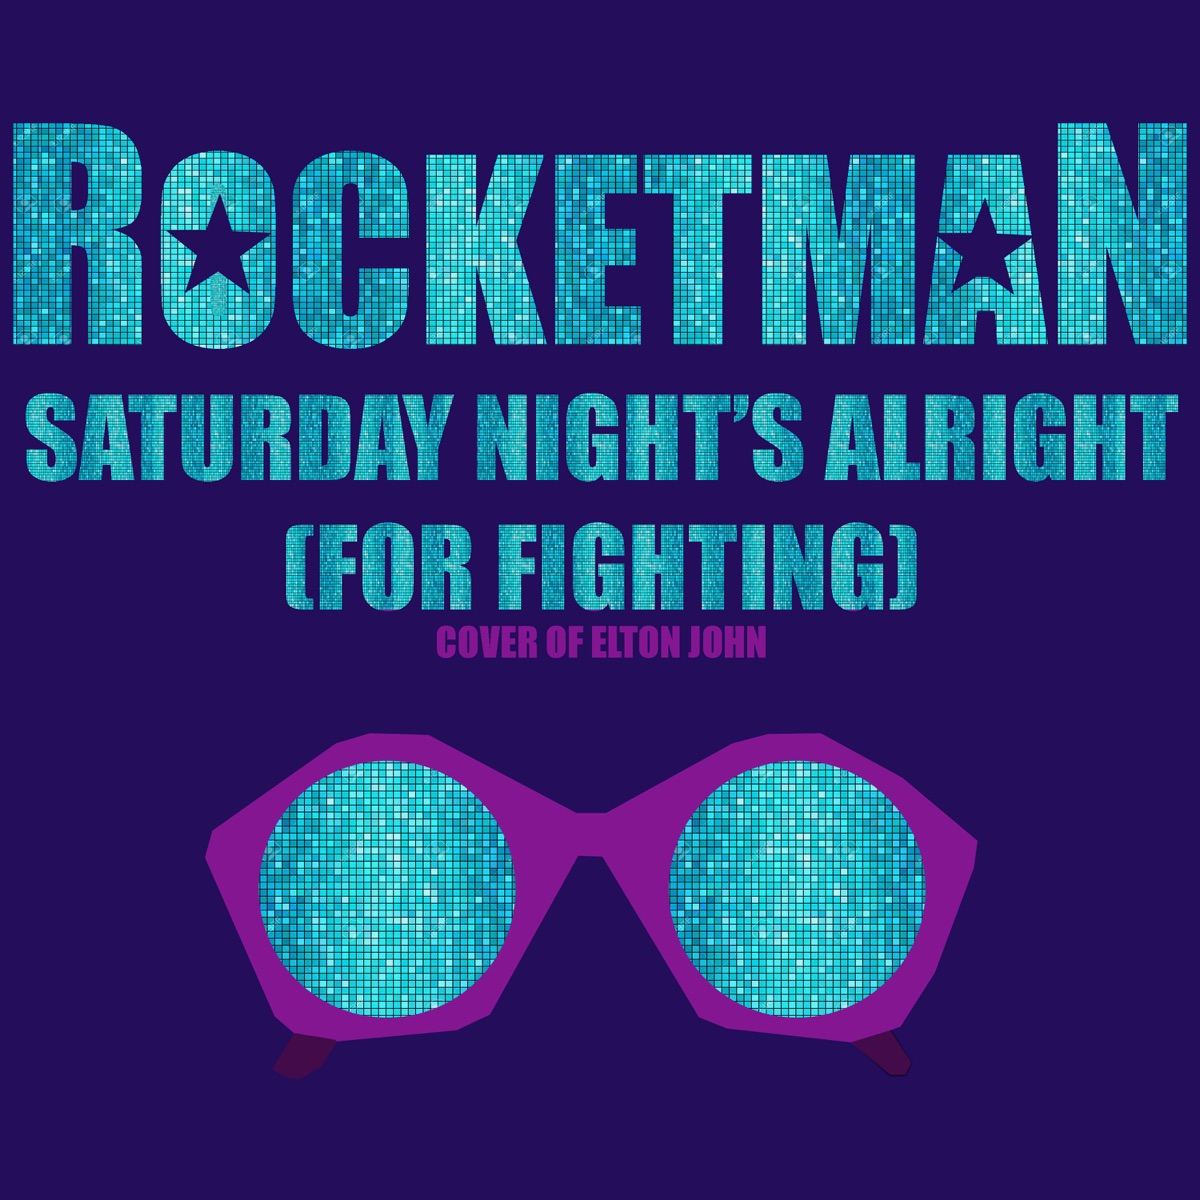 Saturday Nights Alright For Fighting From Rocketman Cover of Elton John - Single Rocket Man CD cover